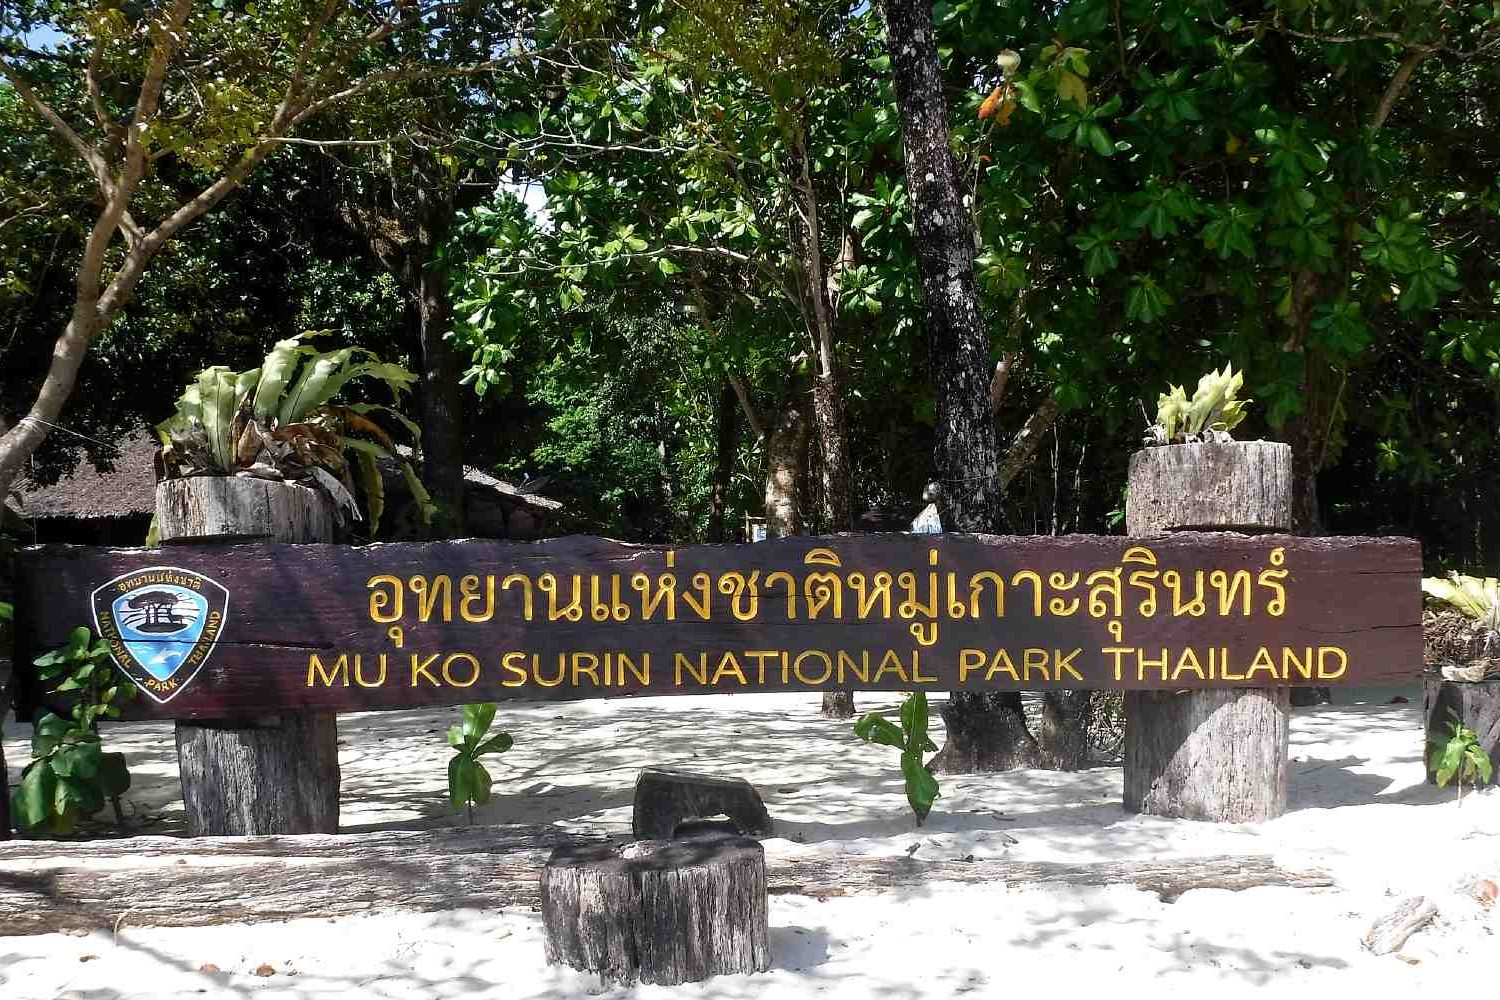 Wooden sign with text Mu Ko Surin National Park